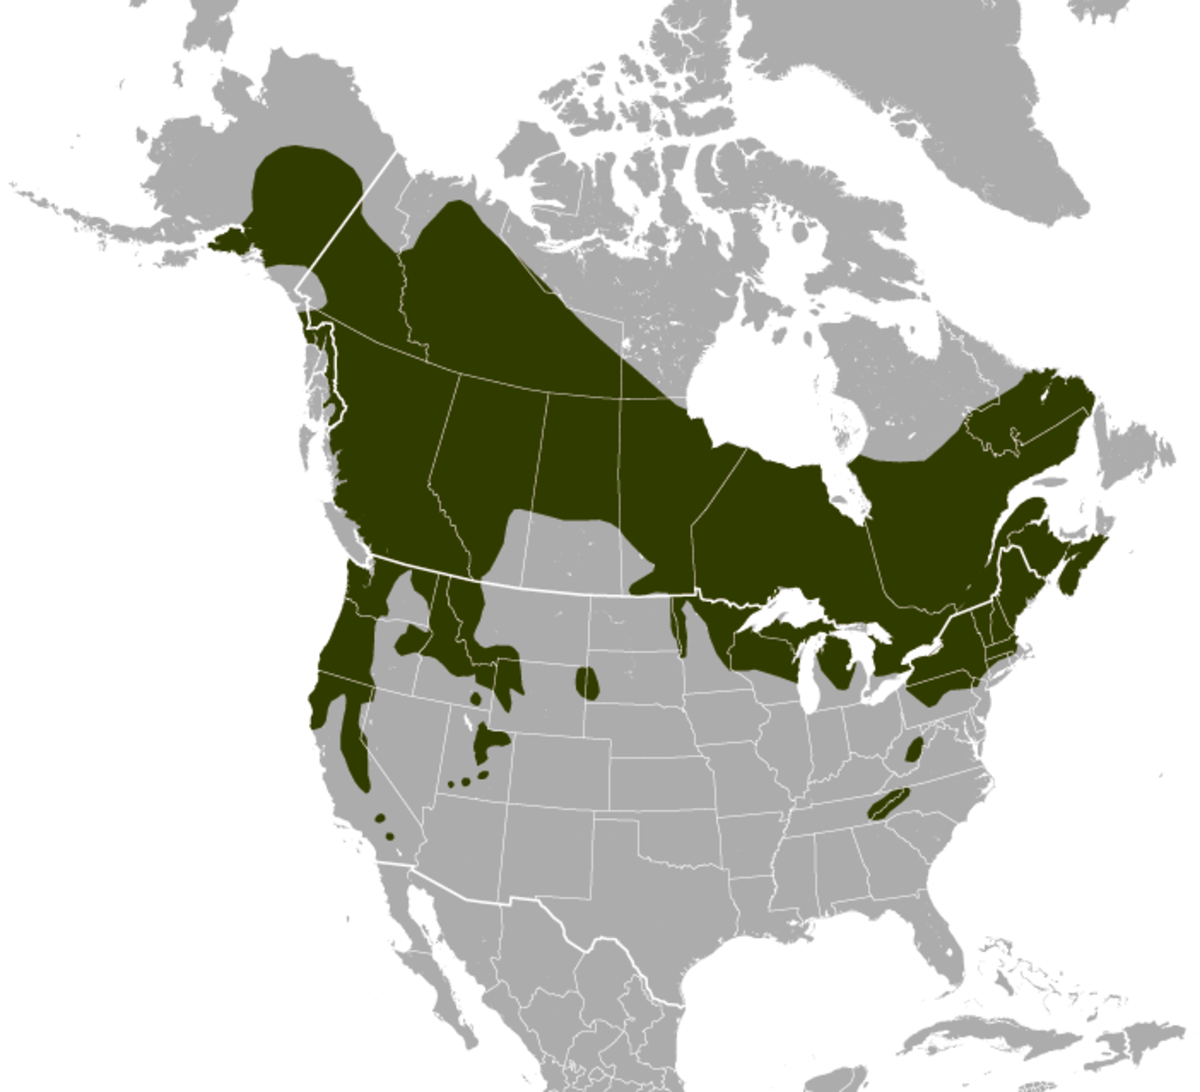 Where to find a northern flying squirrel.